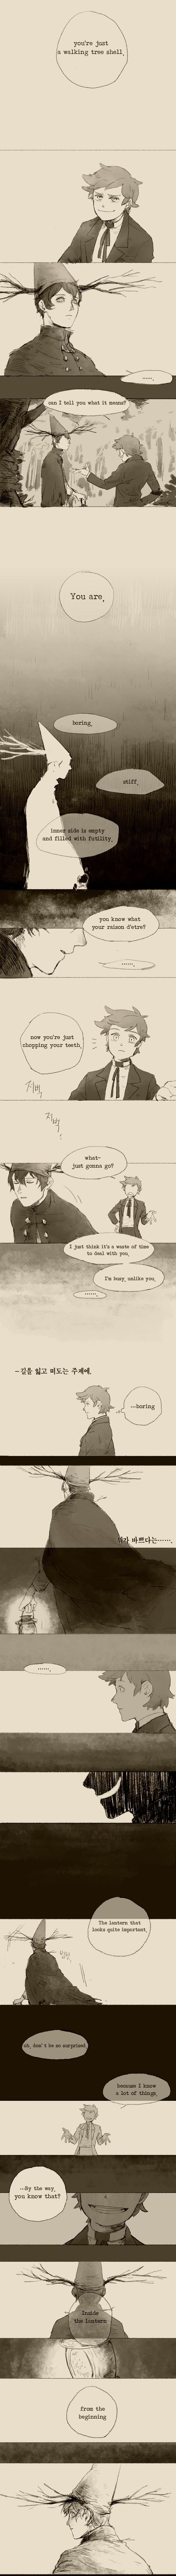 Over the garden wall art style   best Bad End Friends uc images on Pinterest  Cartoon crossovers